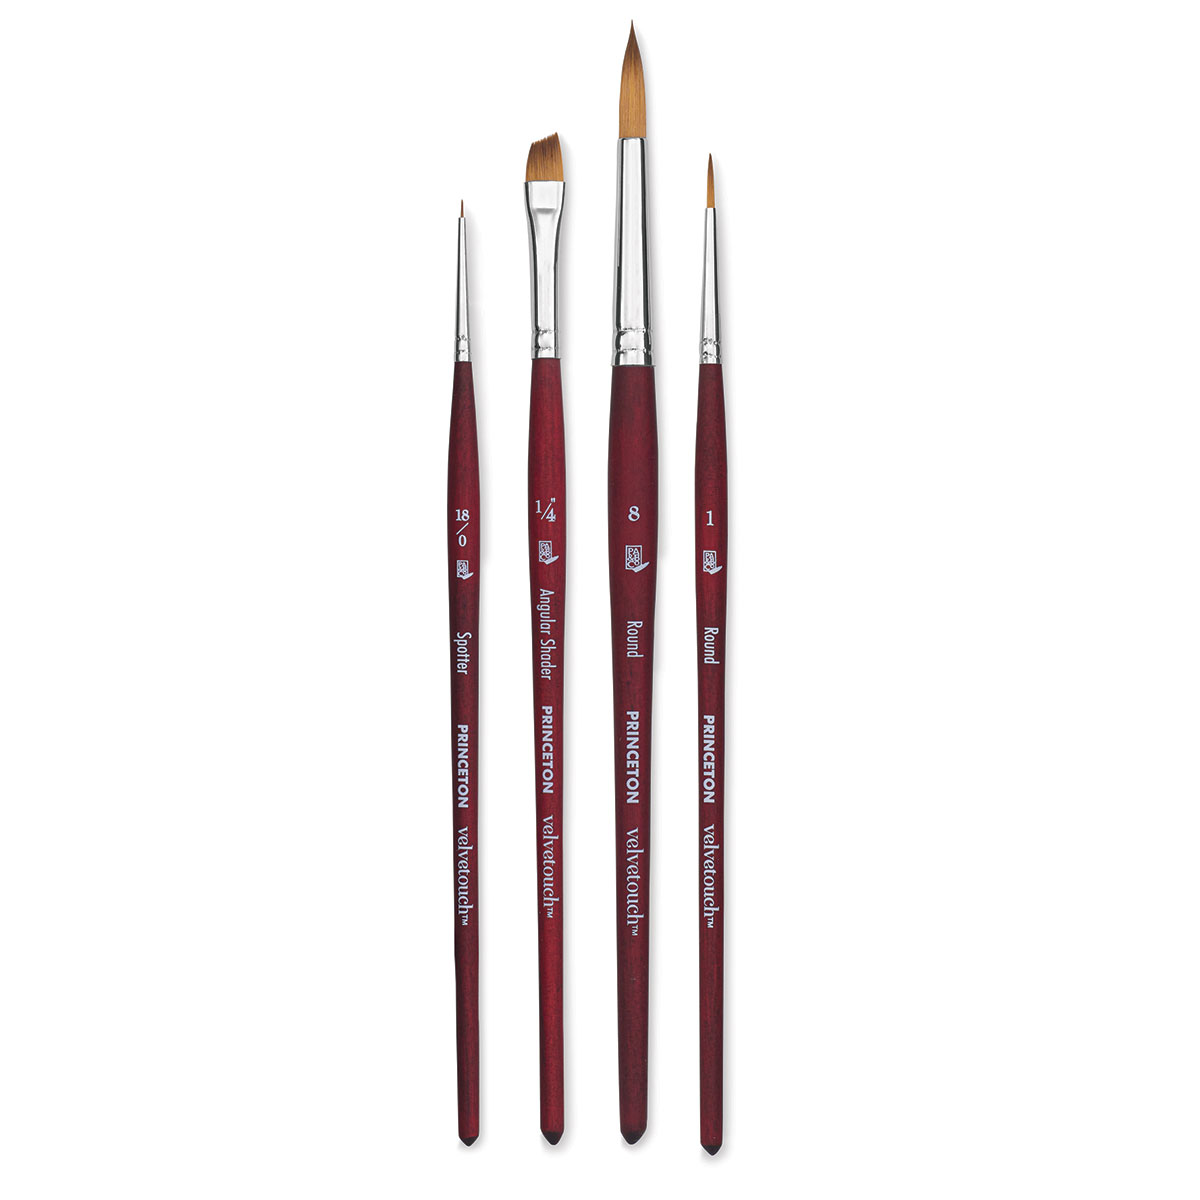 Mixed-Media Brush for Acrylic Series 3950 Mini Flat Shader Luxury Synthetic Watercolor /& Oil Princeton Velvetouch Artiste Size 0